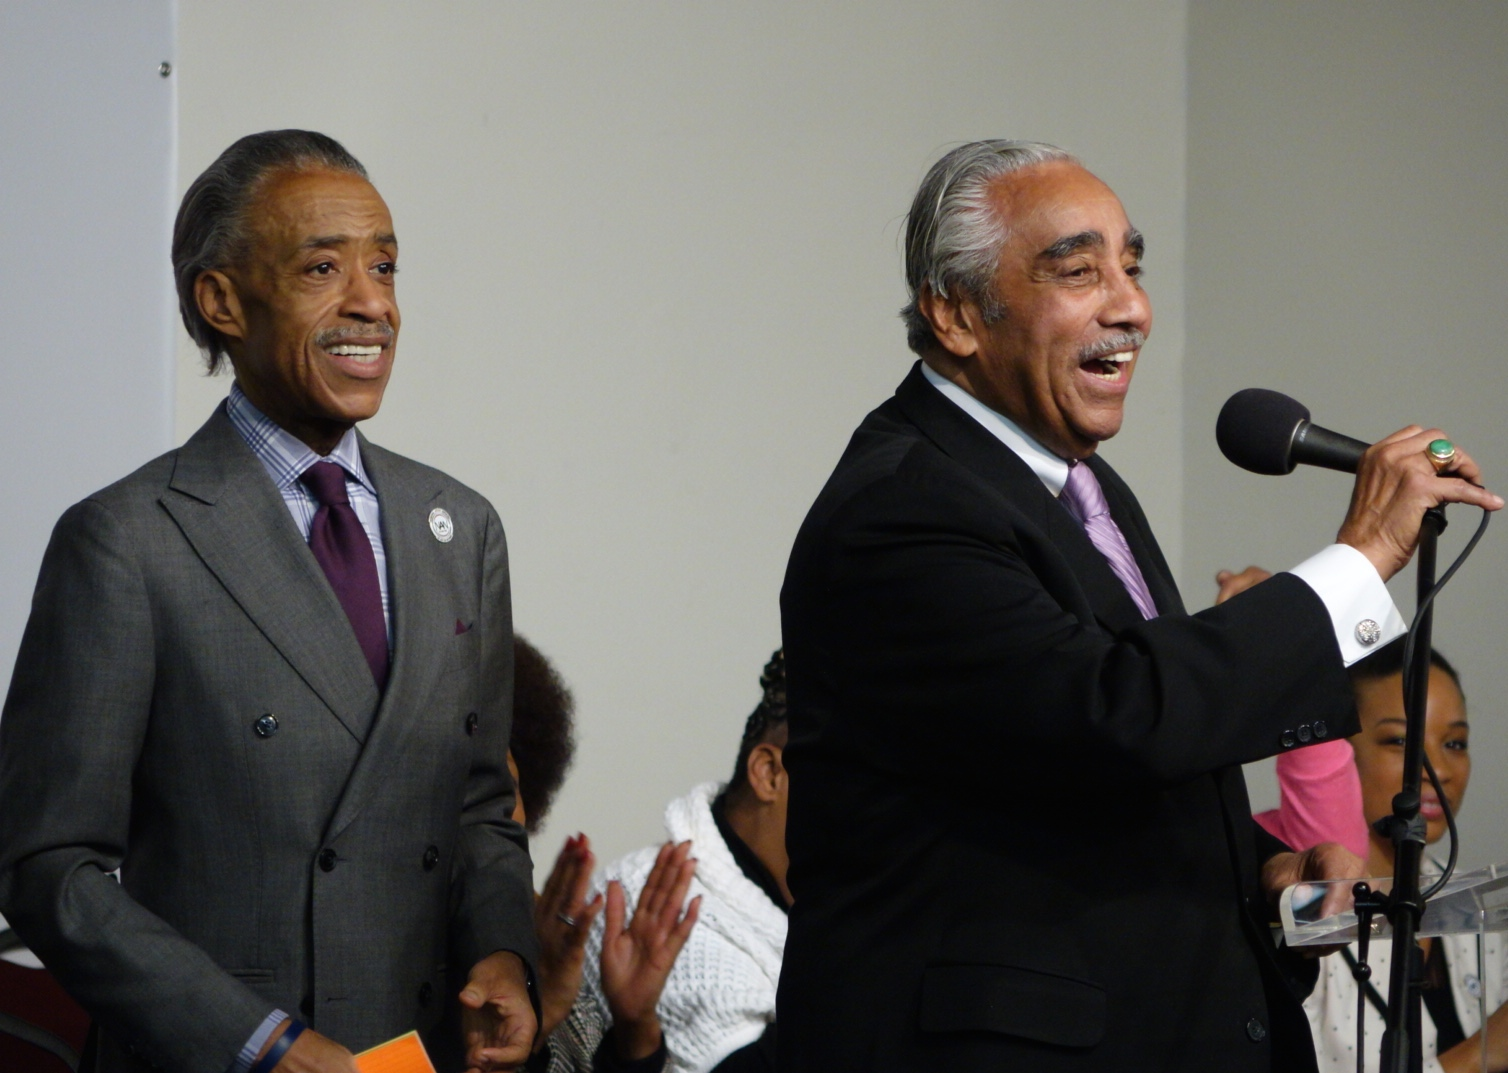 Rep. Charles B. Rangel speaks. 1/19/15